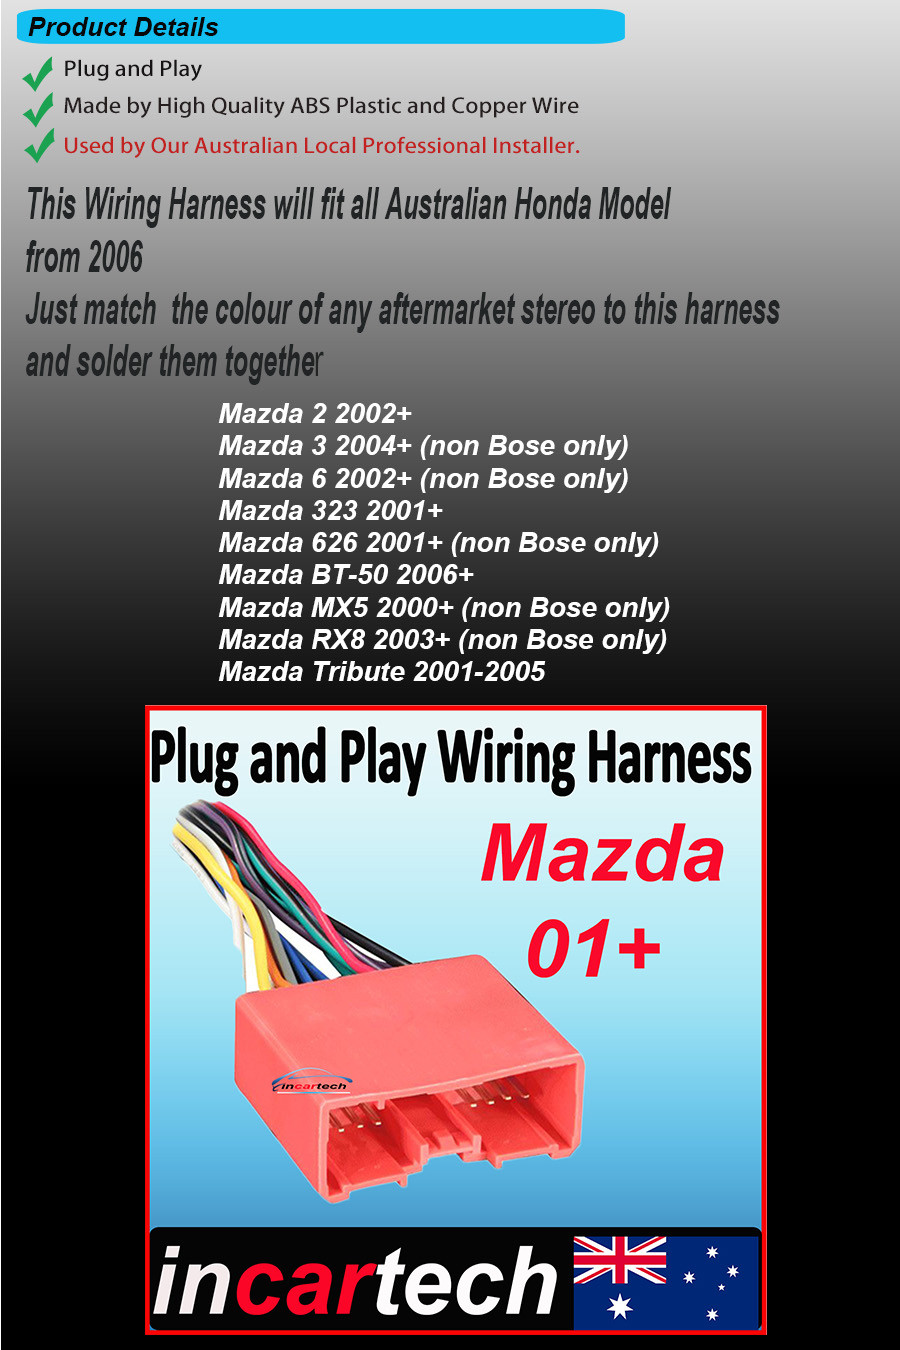 Aftermarket Radio Wire Harness Stereo Connect Wiring Fit Mazda 2 3 6 Rx8 On 20 Oct 15 At 000331 Aedst Seller Added The Following Information